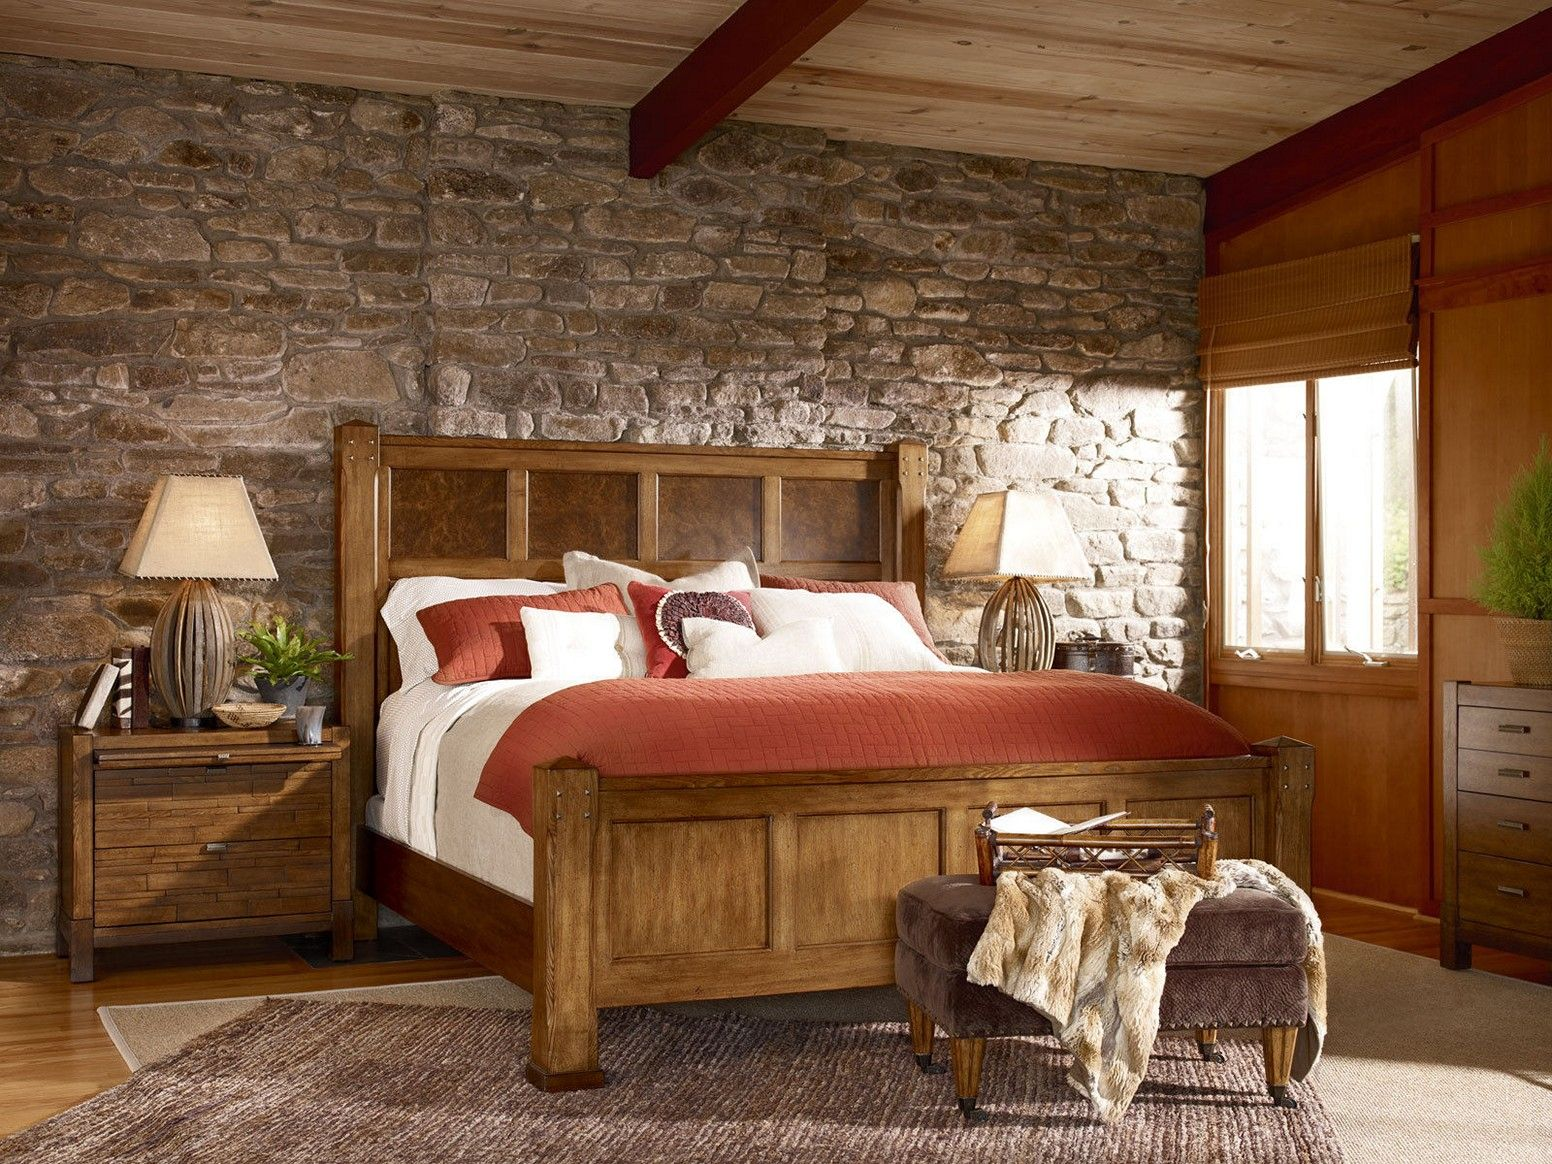 country bedroom ideas rustic country bedroom decorating ideas interior decor 11187